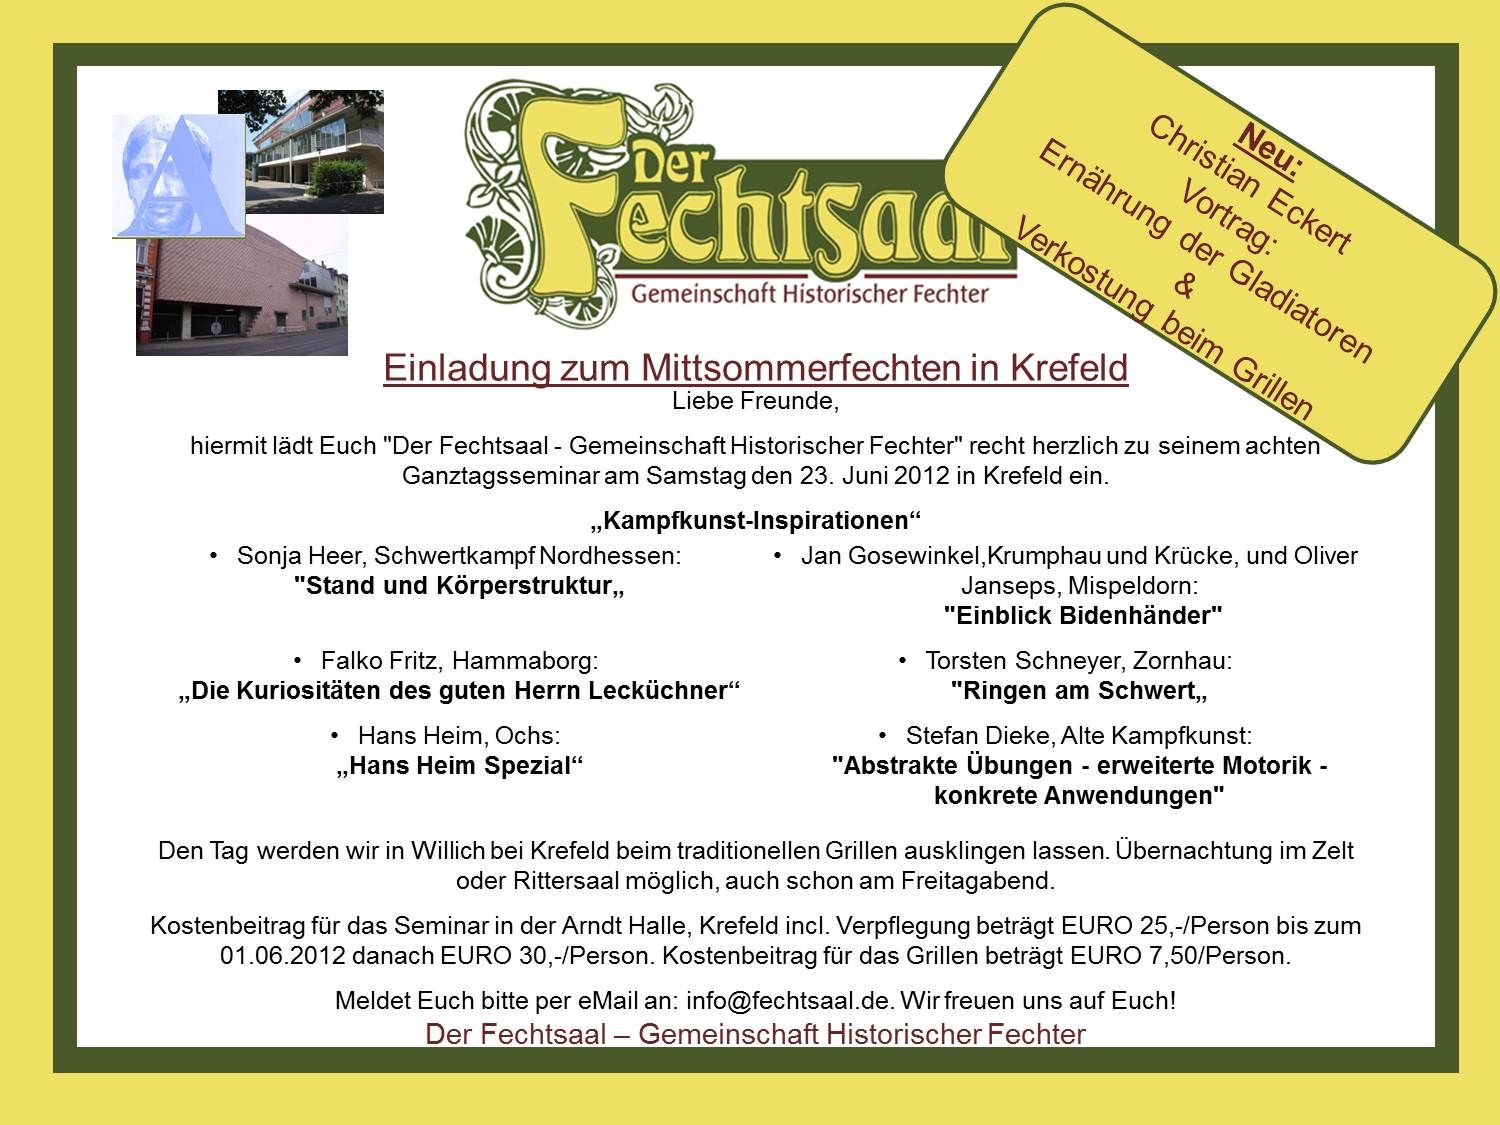 Invitation Mittsommerfechten 2012